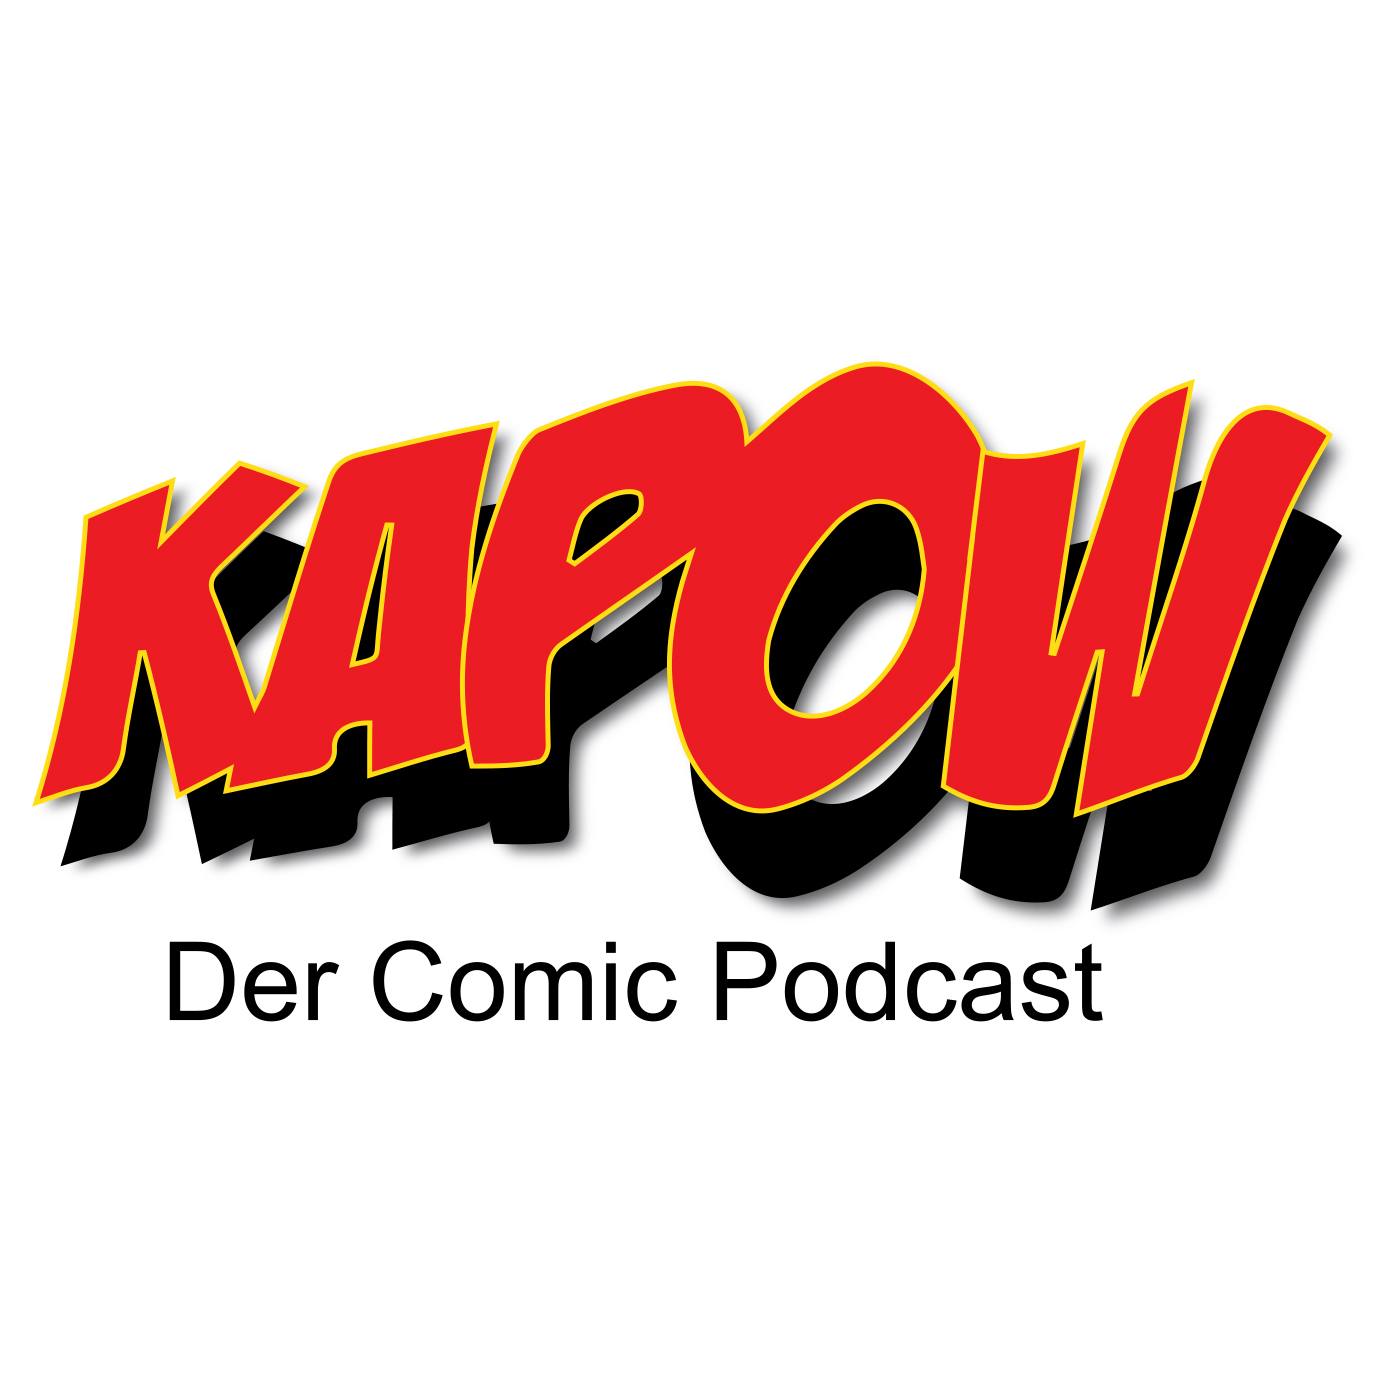 Kapow - Der Comic Podcast (mp3 Audio)